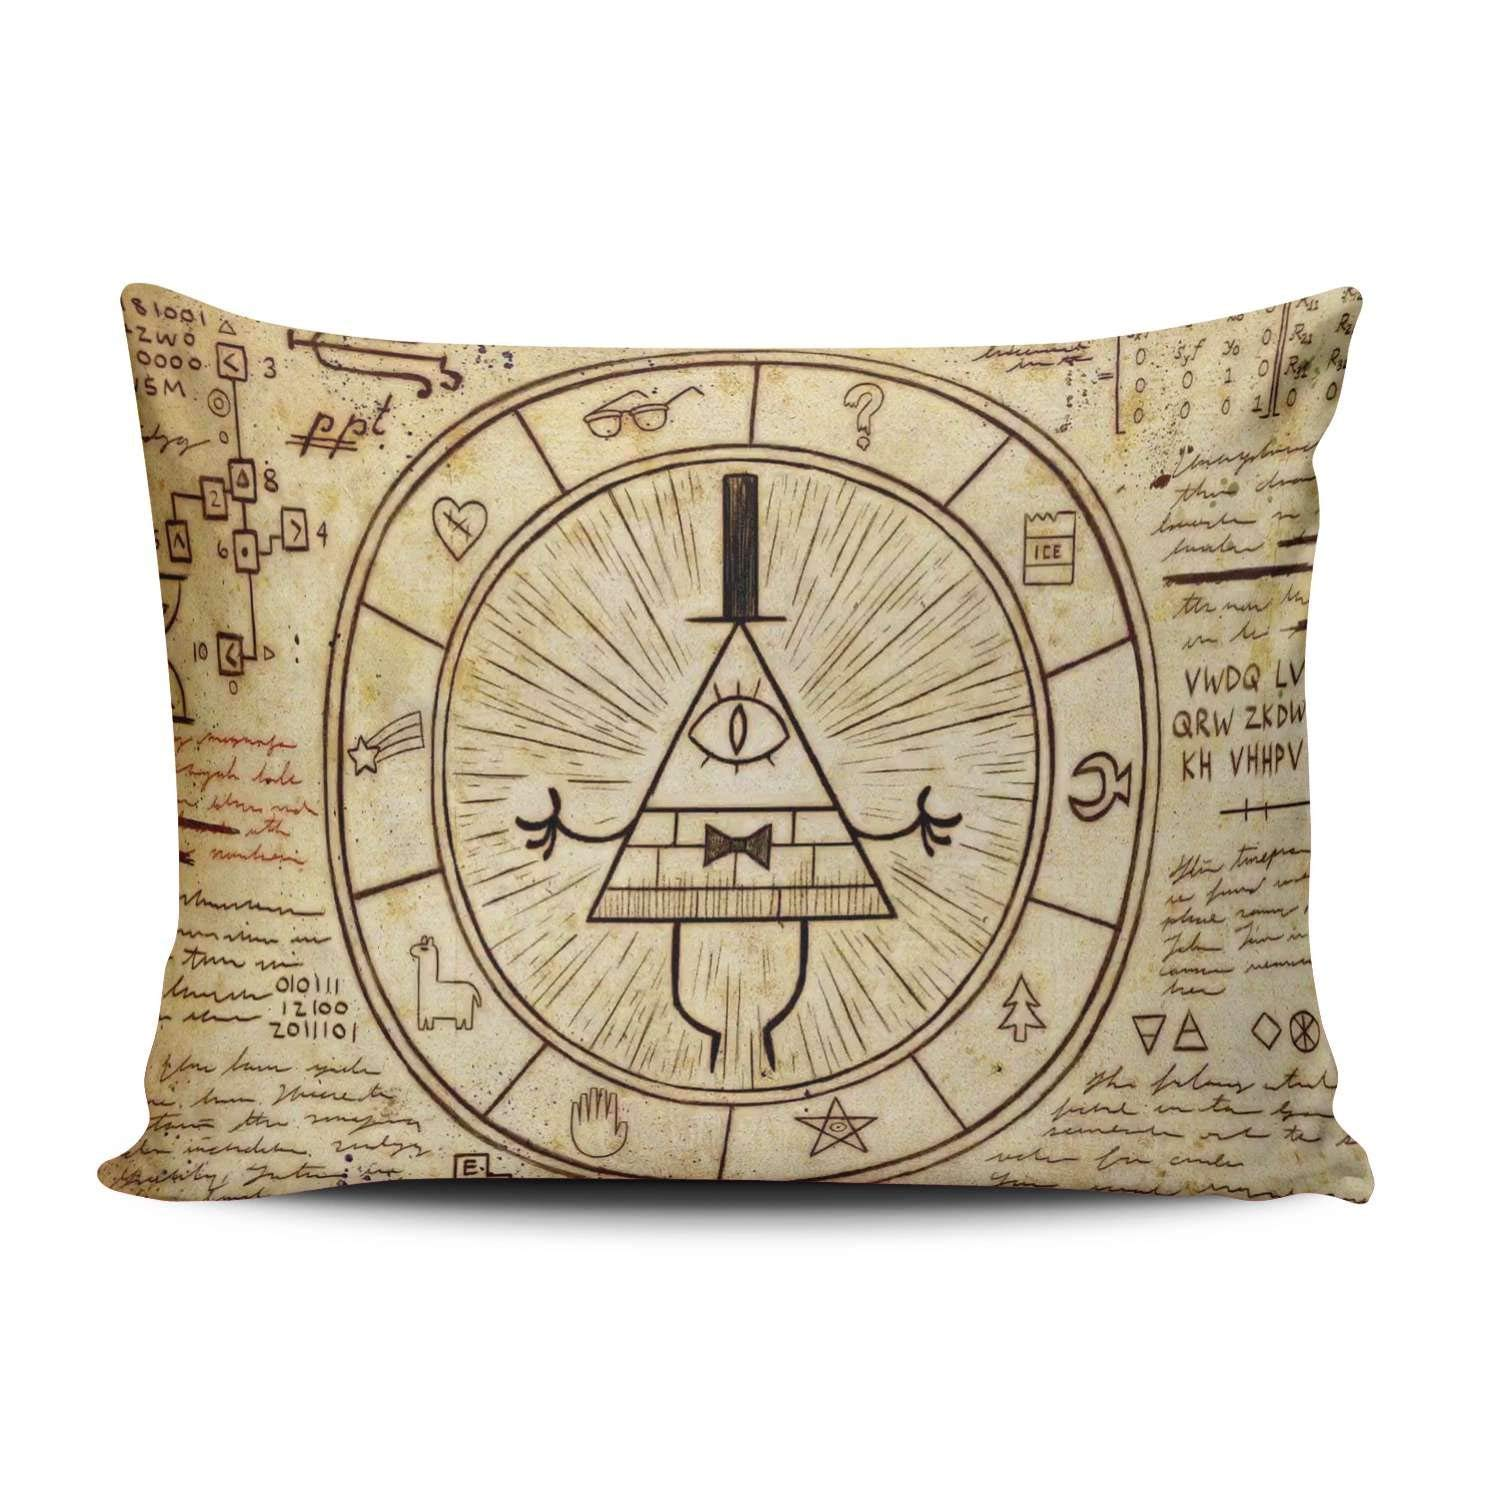 Custom Royal Modern Modern Gravity Falls Bill Cipher Decorative Pillowcase Pillowslip Throw Pillow Case Cover Zippered One Side Printed 20x30 Inches